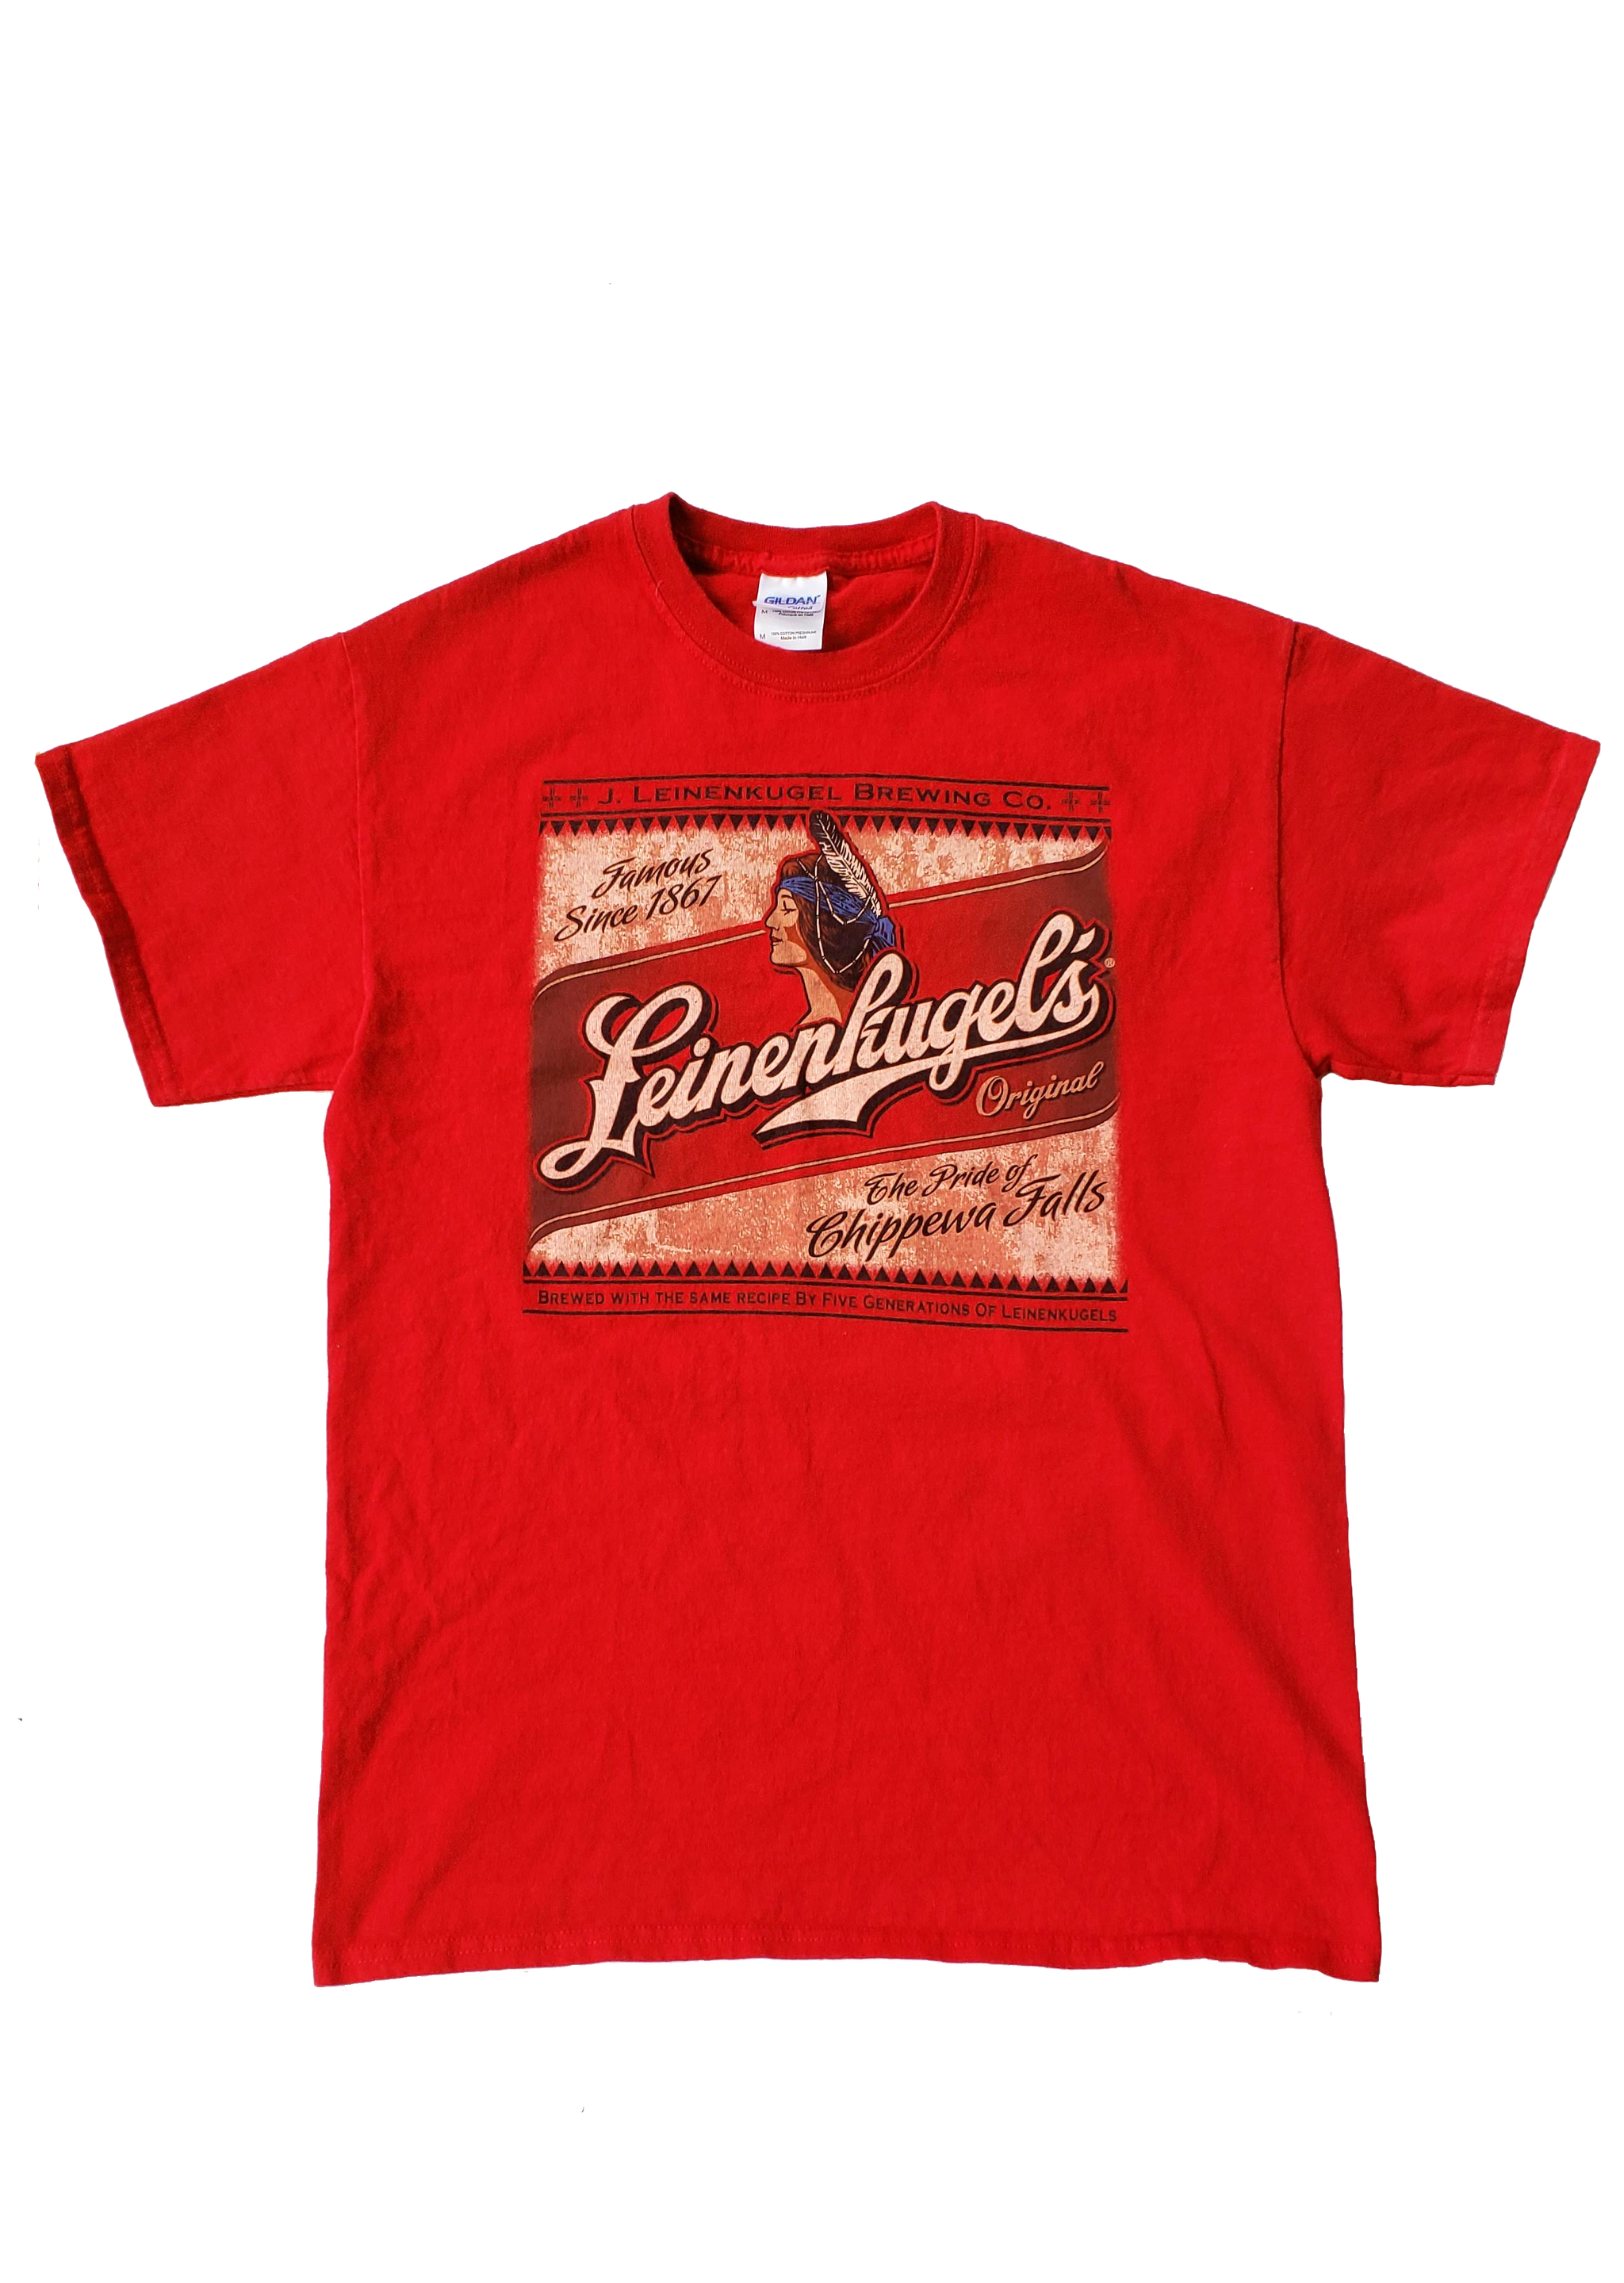 Leinenkugel's Original Beer Tee